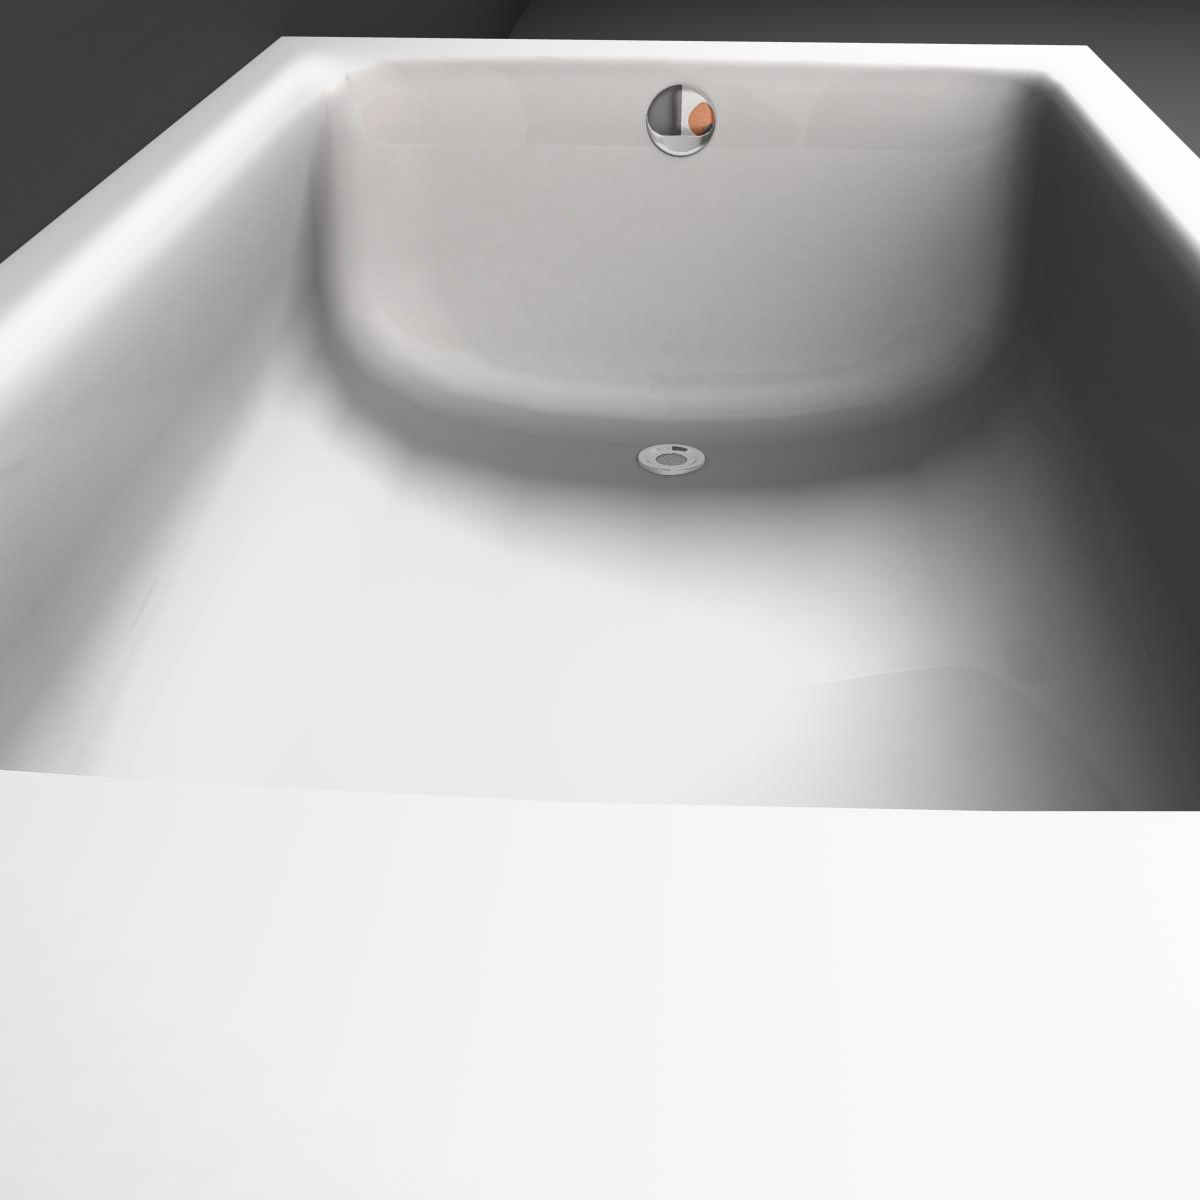 tub 3d model 3ds max fbx ma mb obj 158320